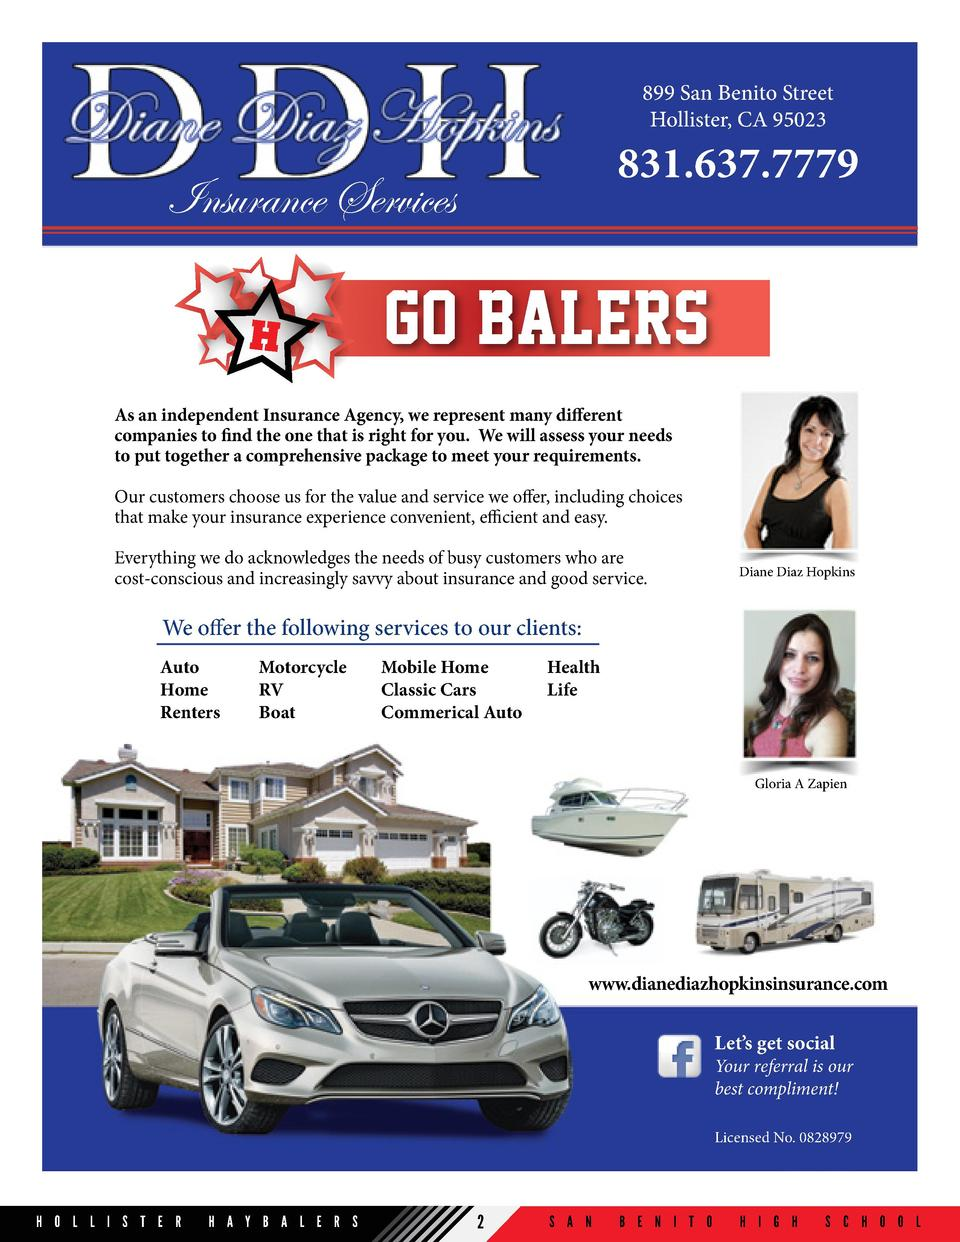 899 San Benito Street Hollister, CA 95023  831.637.7779  Insurance Services H  Go balers    As an independent Insurance Ag...